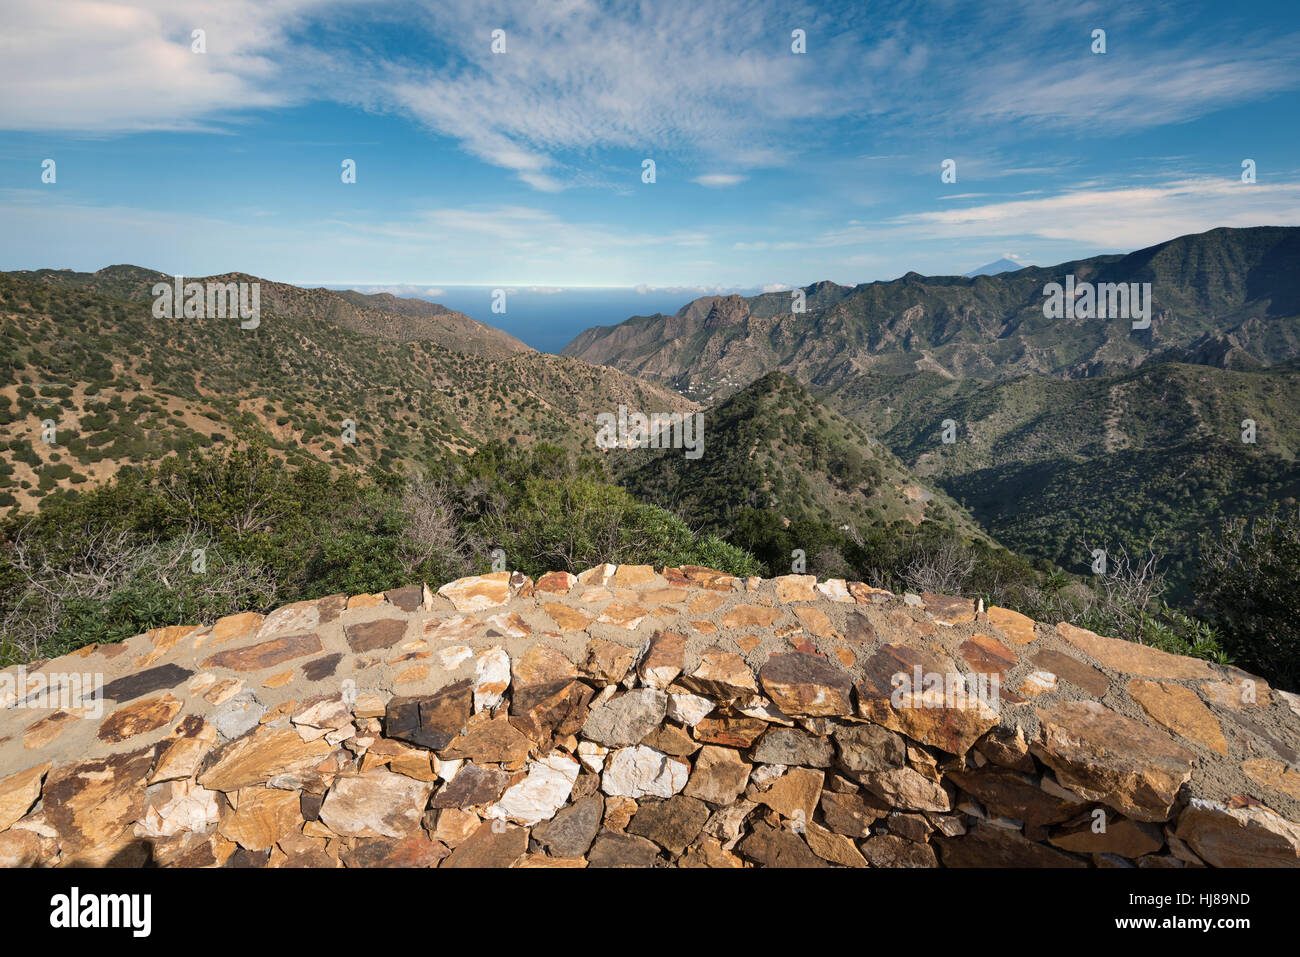 La Gomera landscape, viewpoint with mountains and canyons in the background in La Gomera, Canary islands, Spain. - Stock Image